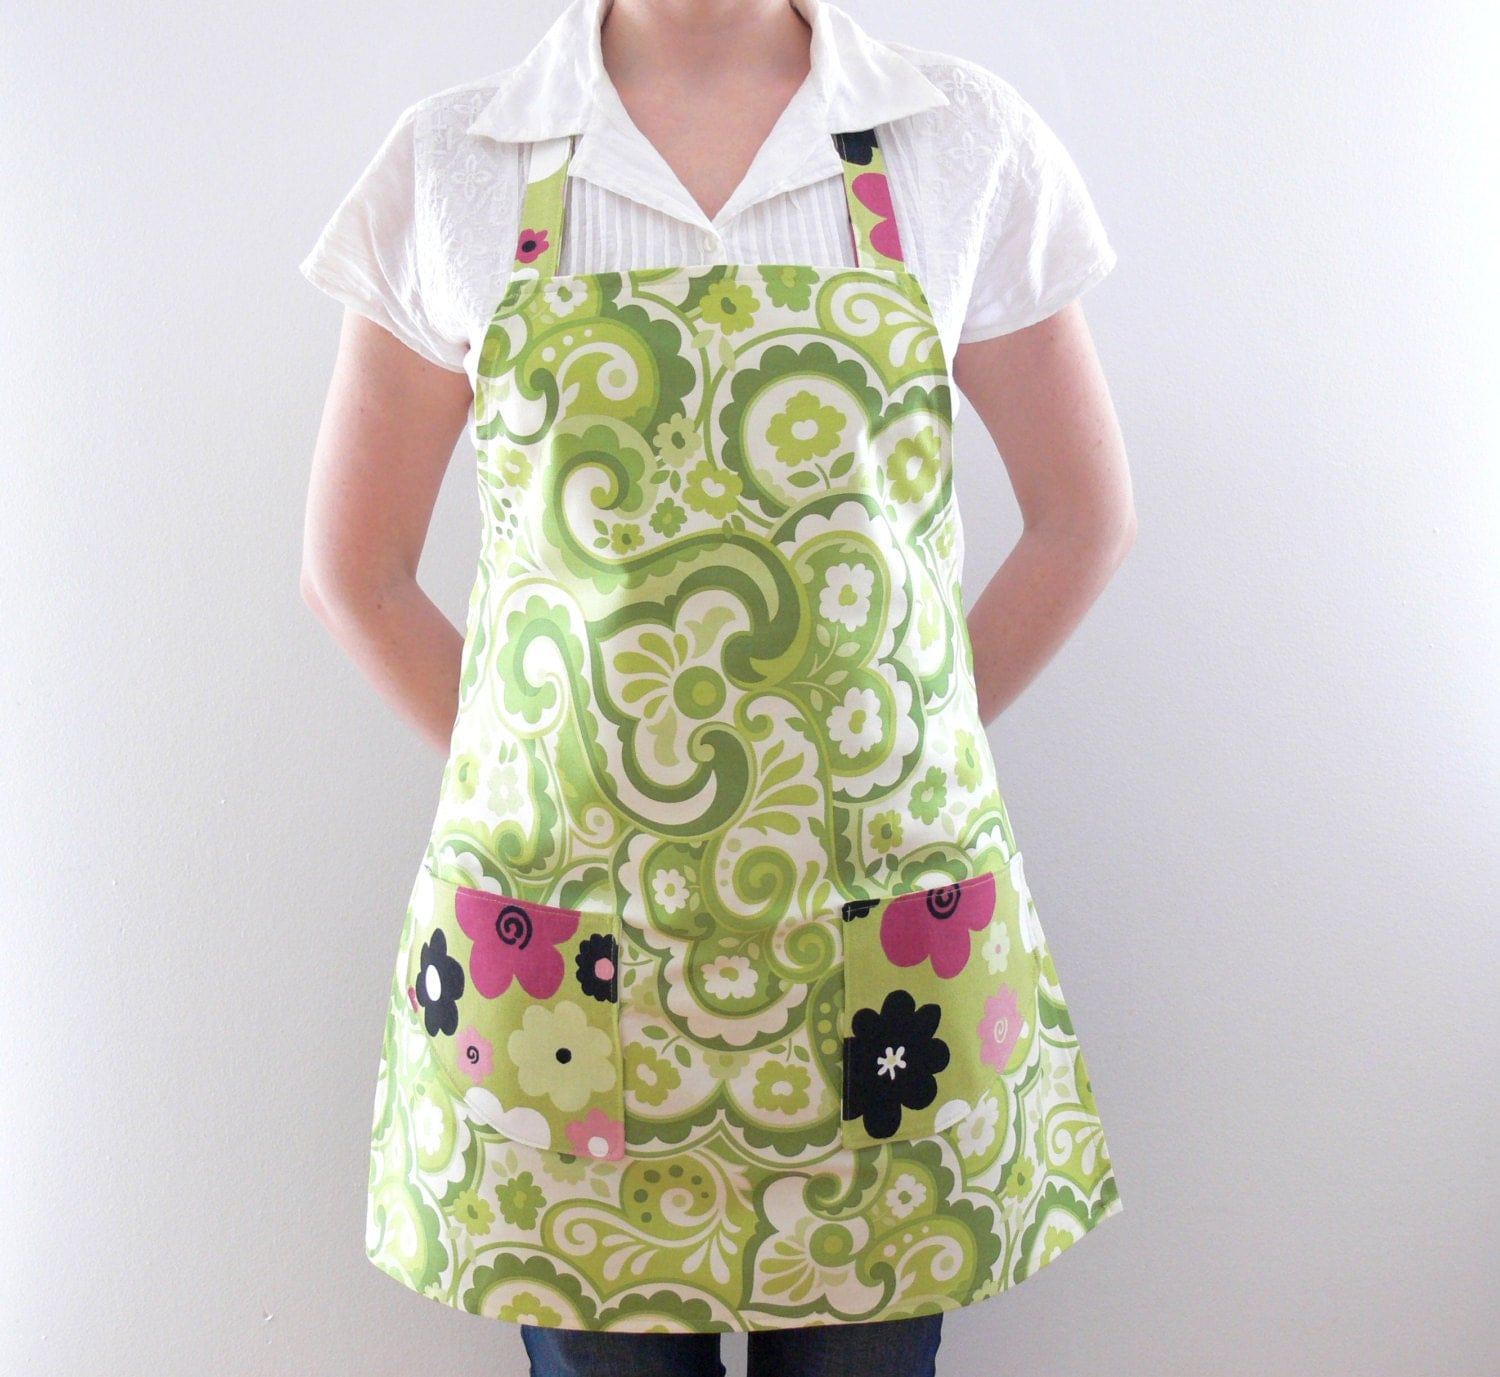 womens aprons apron with pockets kitchen apron green floral. Black Bedroom Furniture Sets. Home Design Ideas